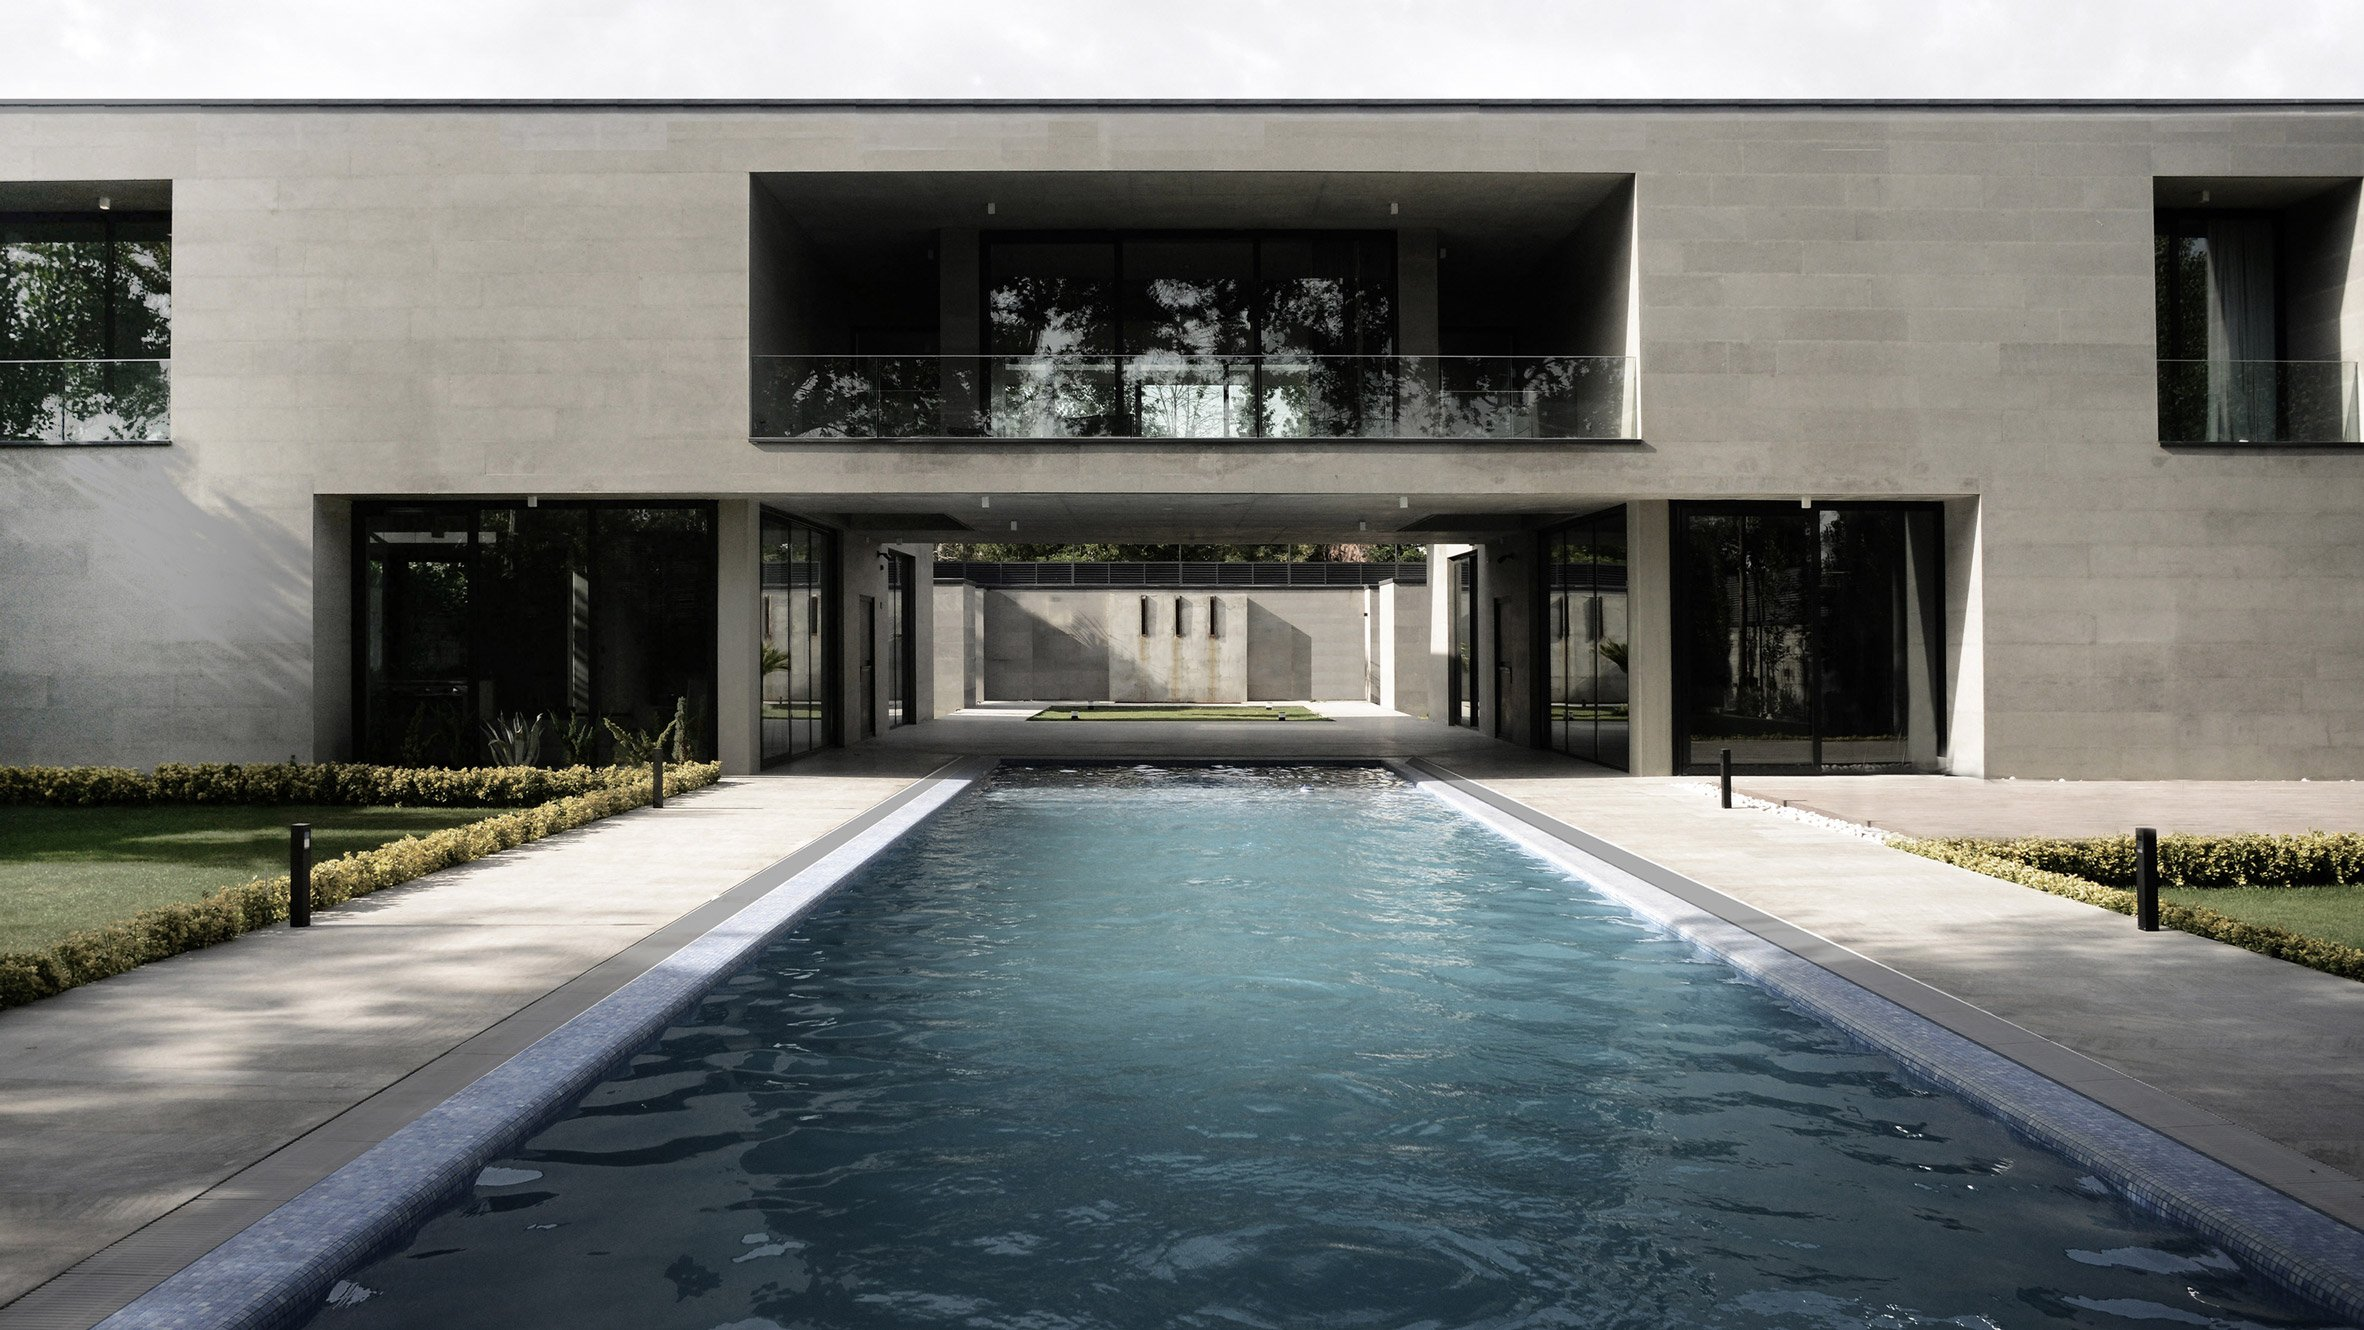 Swimming Pool Architecture Design design swimming pool with home with auergewhnlich ideas pool interior decoration is very interesting and beautiful Elevated Walkway Bridges Two Parts Of Iranian Holiday Home Divided By Swimming Pool